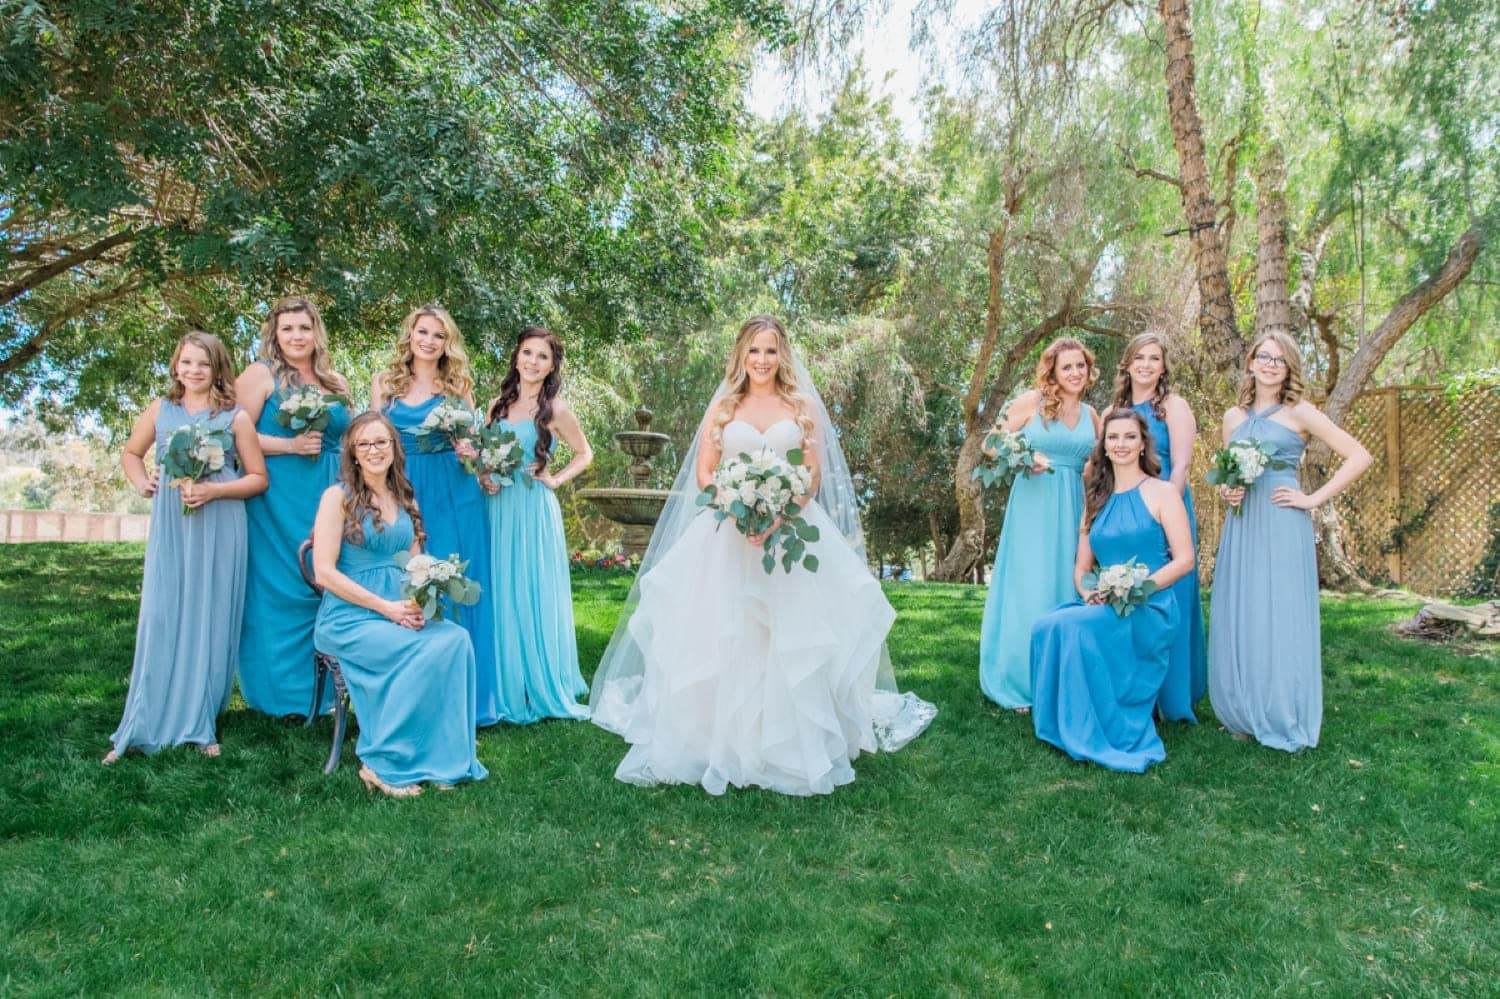 Bride and her bridesmaids doing a vanity fair pose.